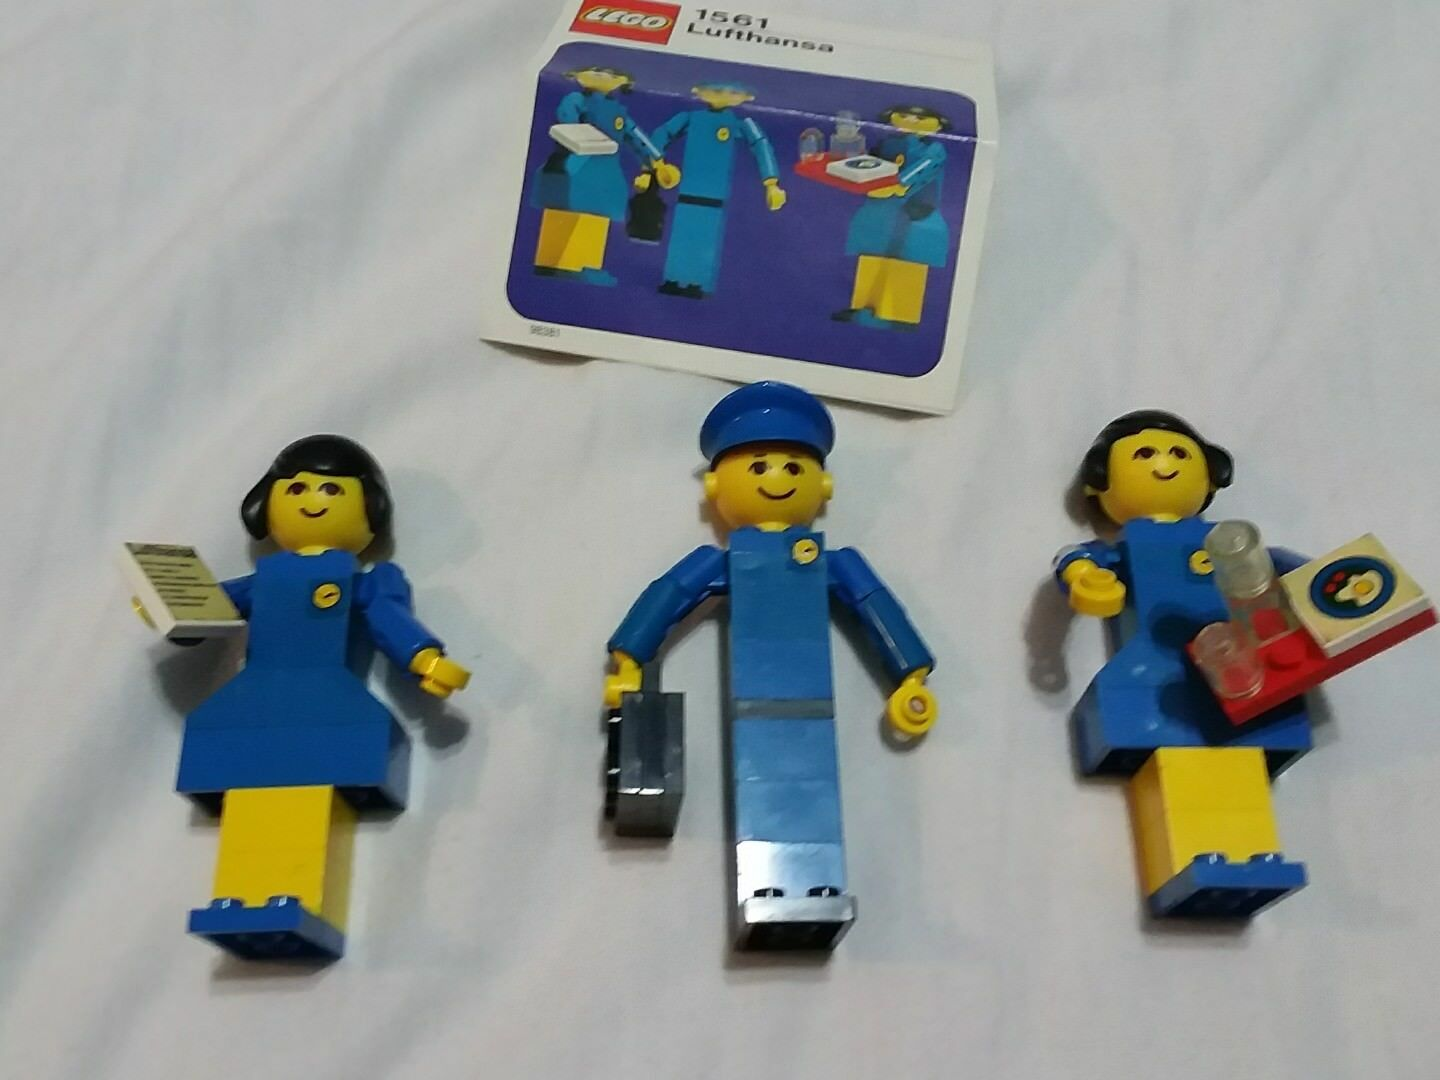 LEGO Vintage 1561  Lufthansa Promotional Set: People